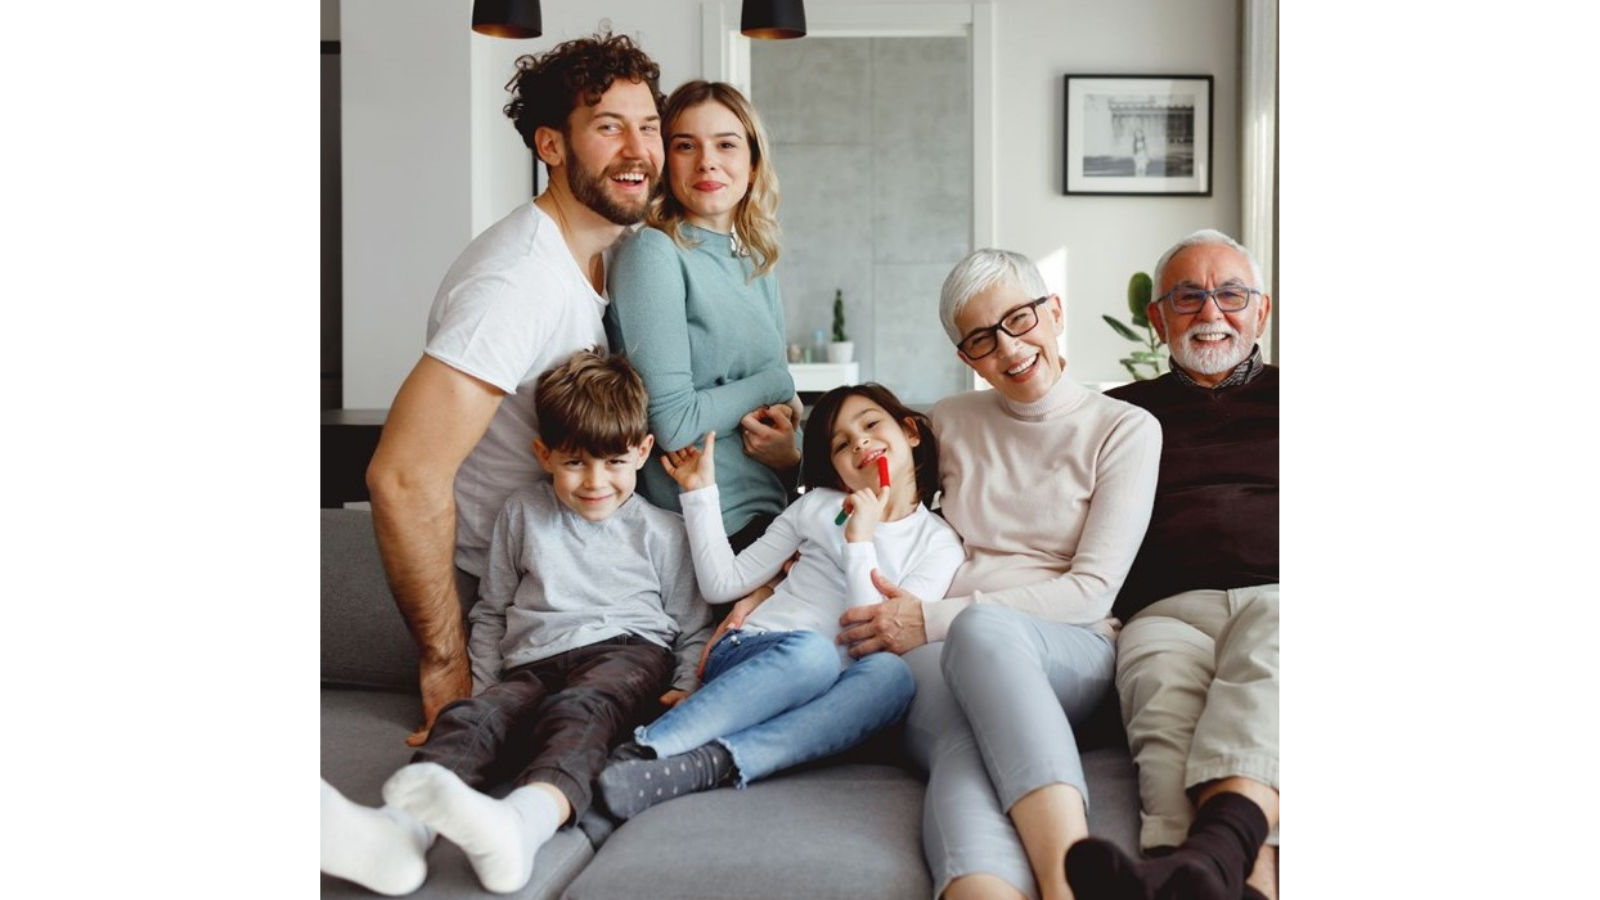 A young family with grandparents sat on a sofa.